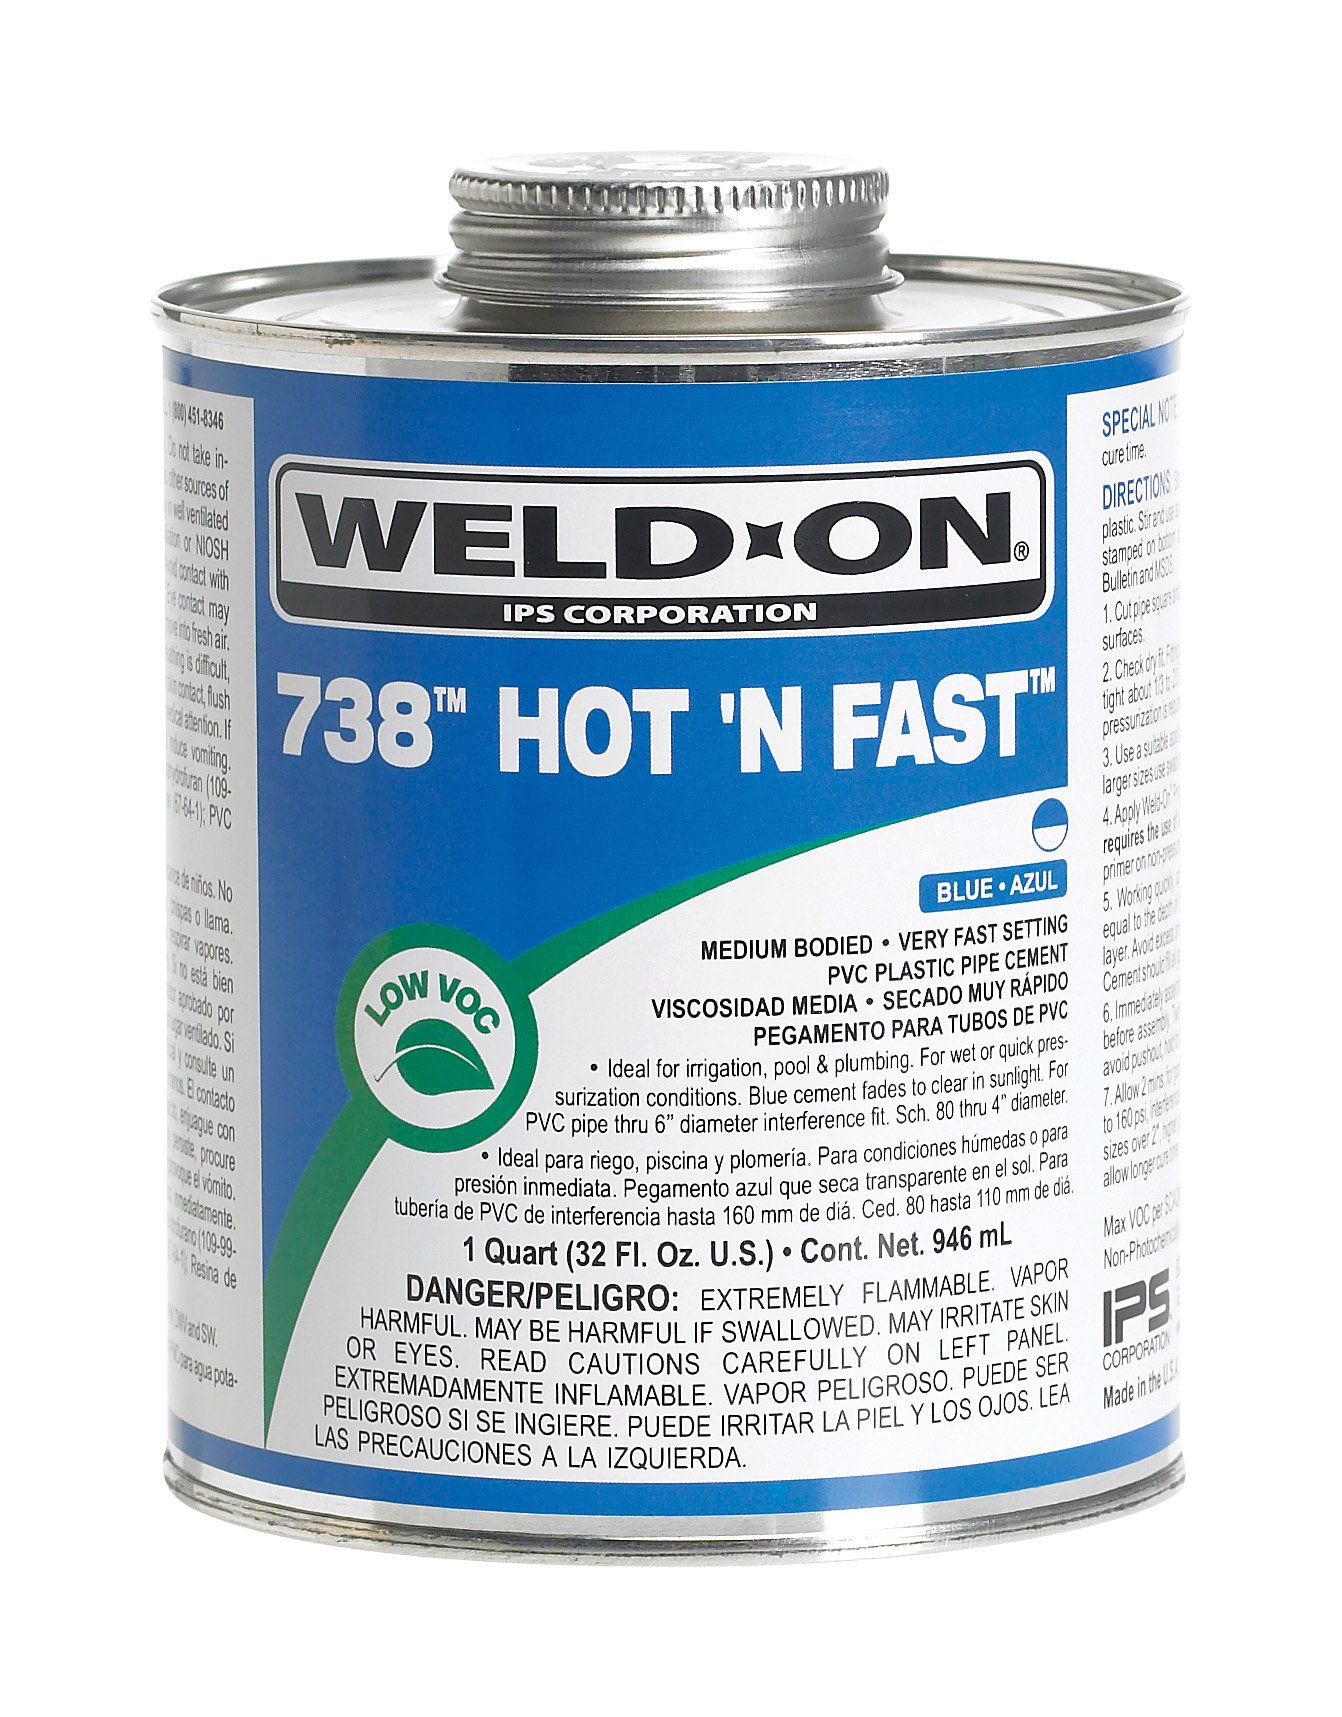 Weld-On 12246 Blue 738 Hot 'N Fast PVC Professional Industrial-Grade Cement, Very Fast-Setting, Low-VOC, 1 quart Can with Applicator Cap